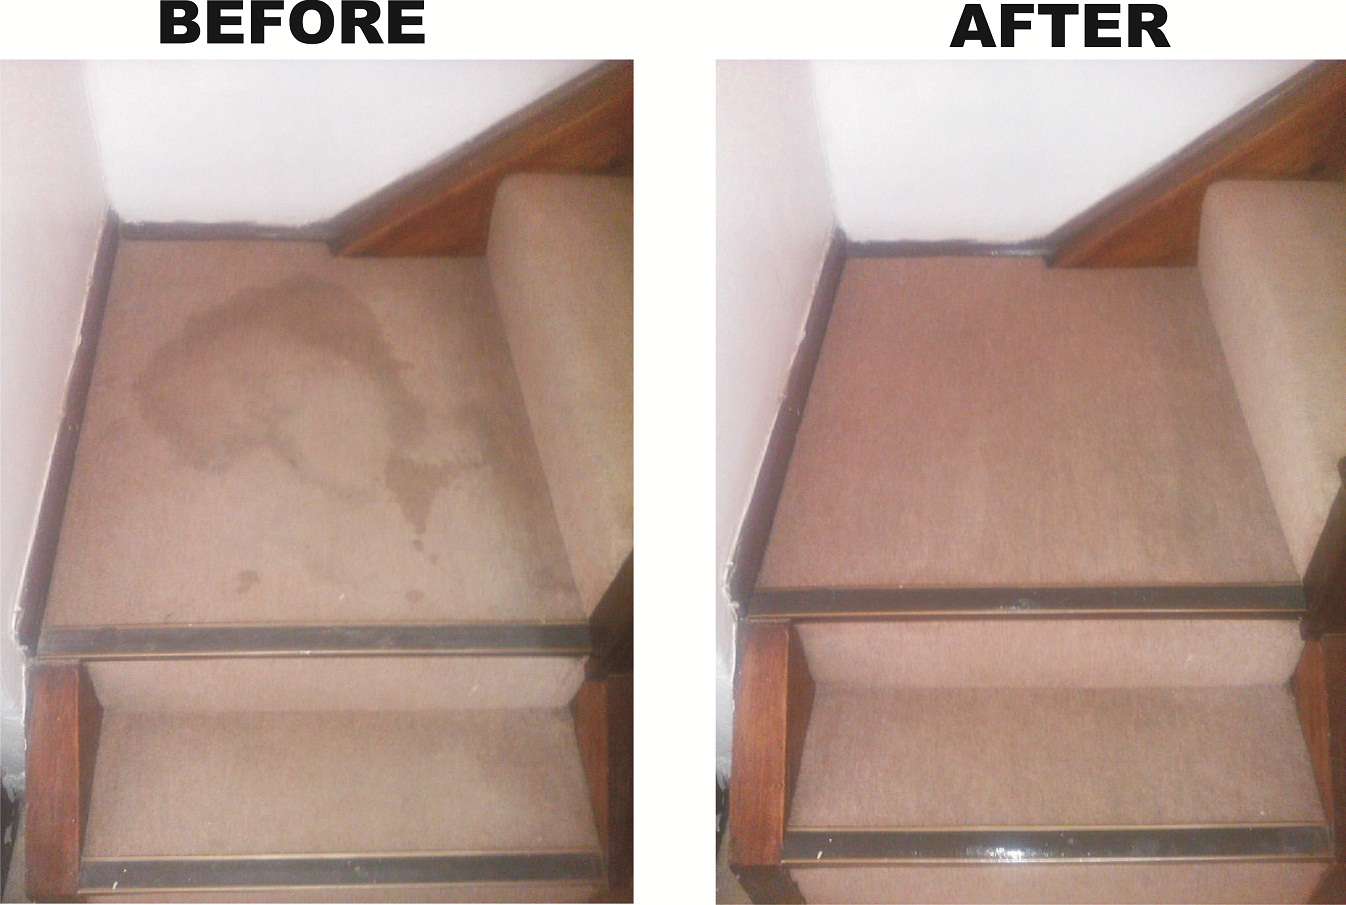 This Method Flushes The Carpet Clean Of Dirt Leaving Your Carpets Fresh And With No Sticky Residue Which Ists In Re Soiling